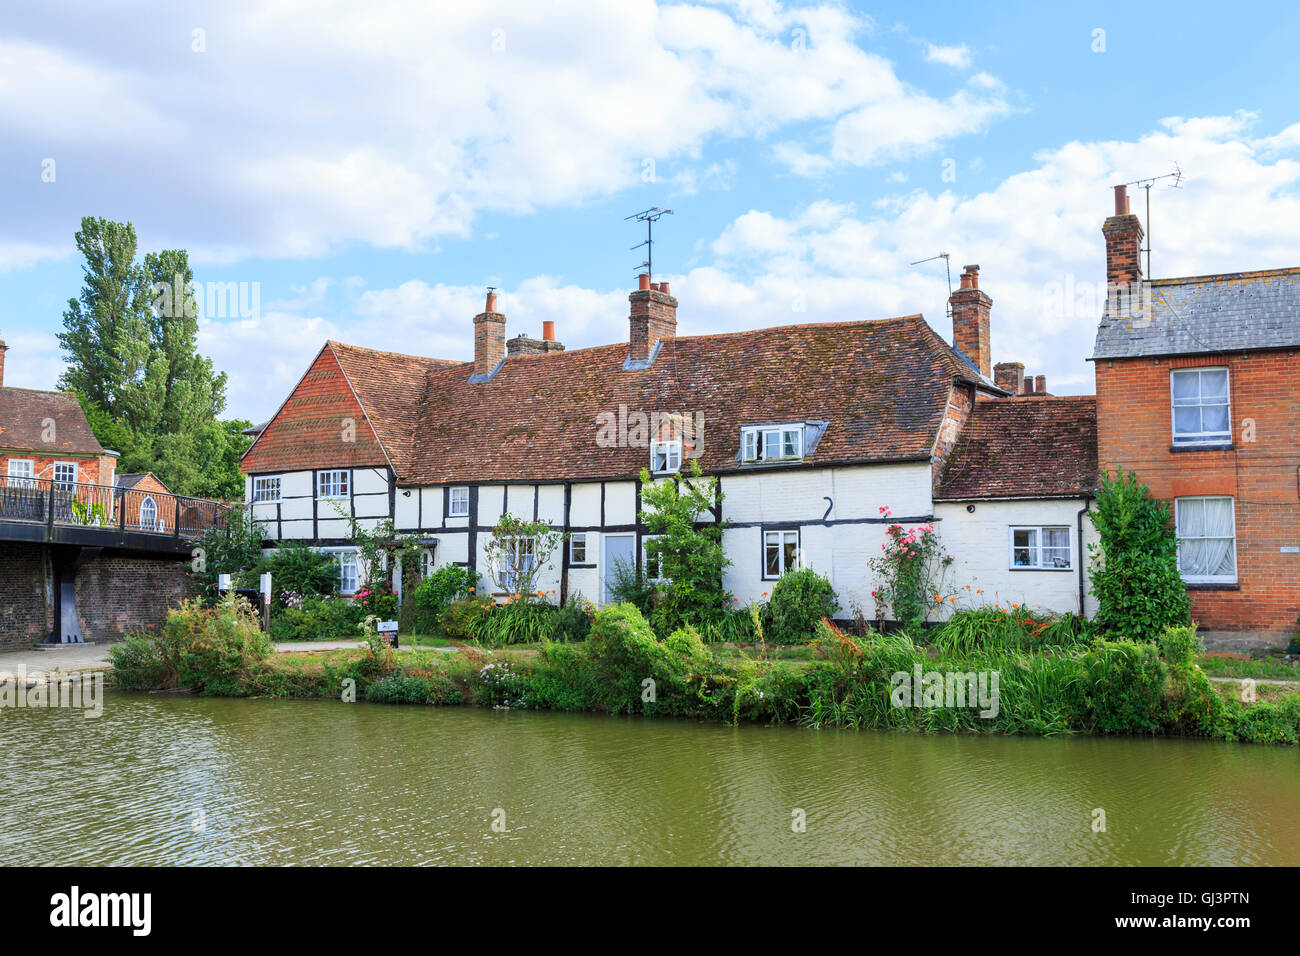 Pretty white timbered cottages on the bank of the Kennet and Avon Canal, Hungerford Wharf, Hungerford, Berkshire - Stock Image